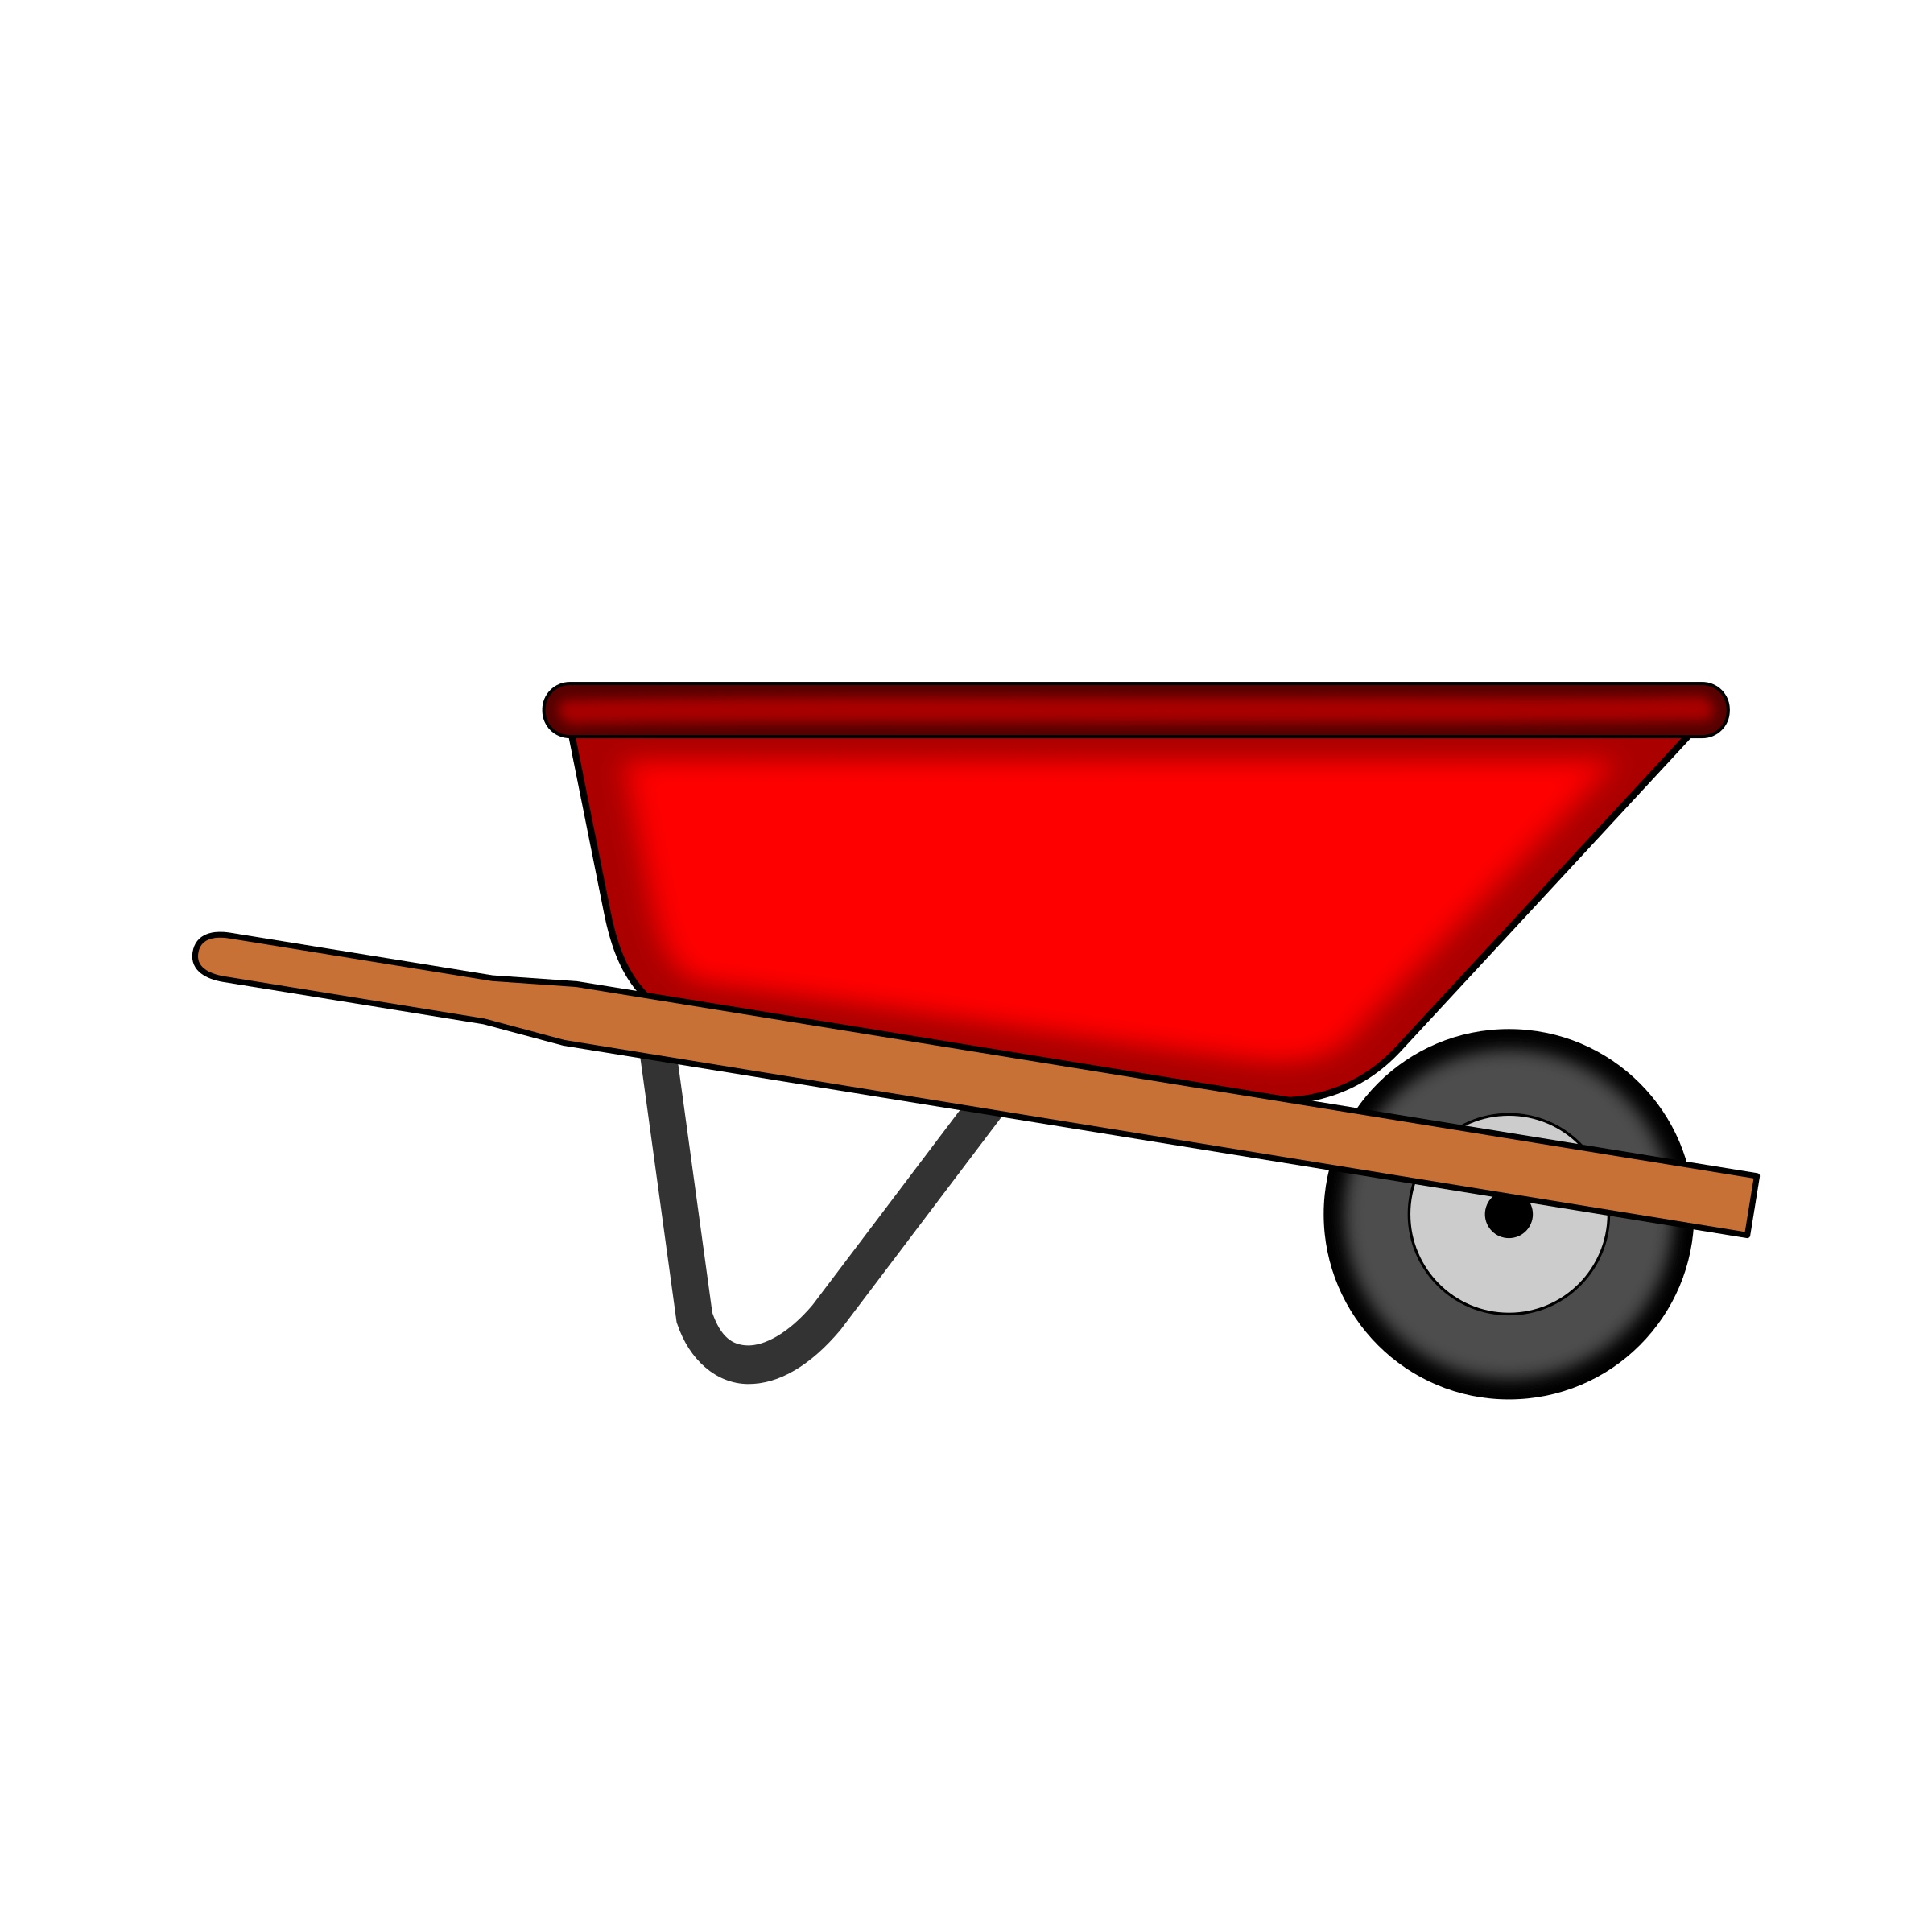 Wheelbarrel clipart picture royalty free stock Wheelbarrow clipart image free 5 » Clipart Portal picture royalty free stock